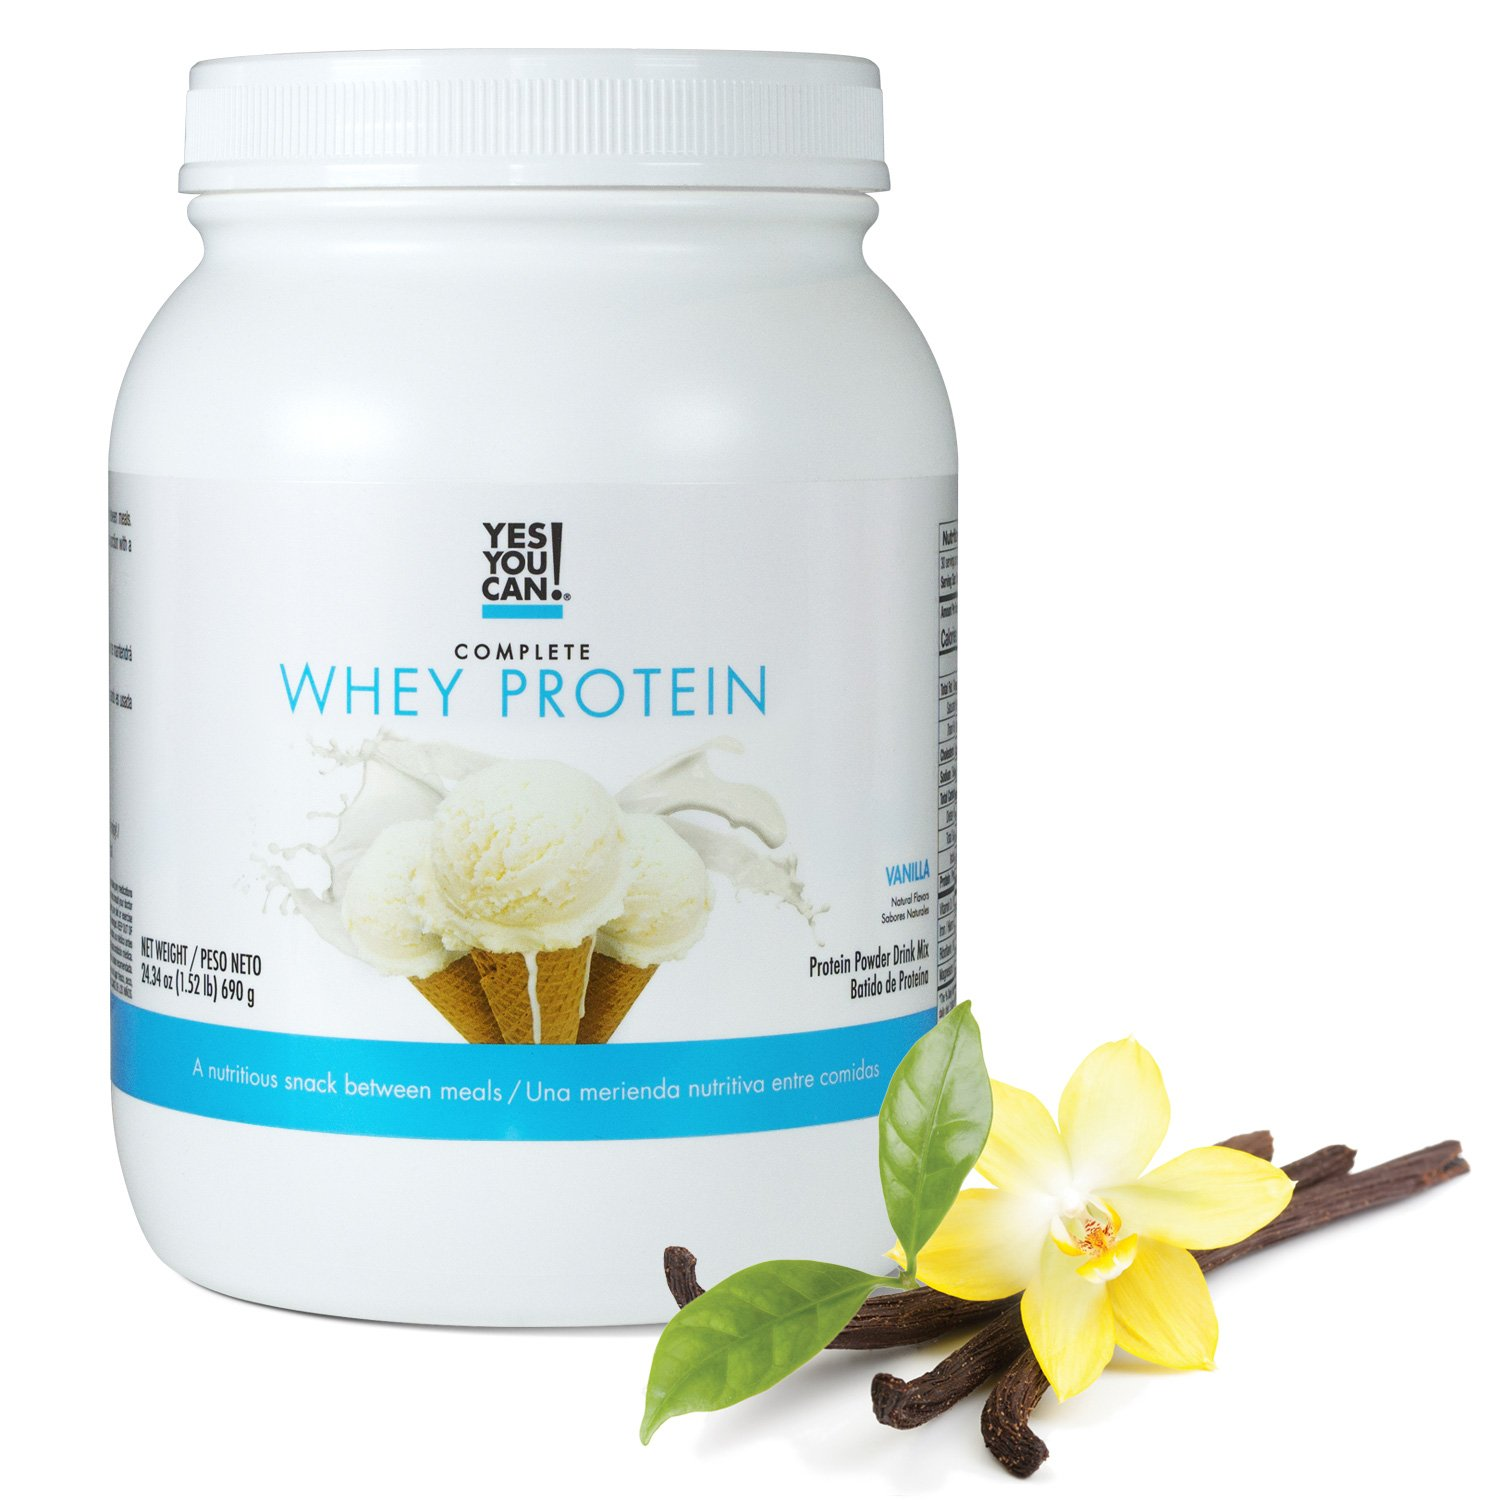 Yes You Can! Complete Whey Protein, a Nutritious Snack Between Meals, 15 Grams of Protein, Helps Lose Weight and Build Muscle, Batidos de Proteína ...